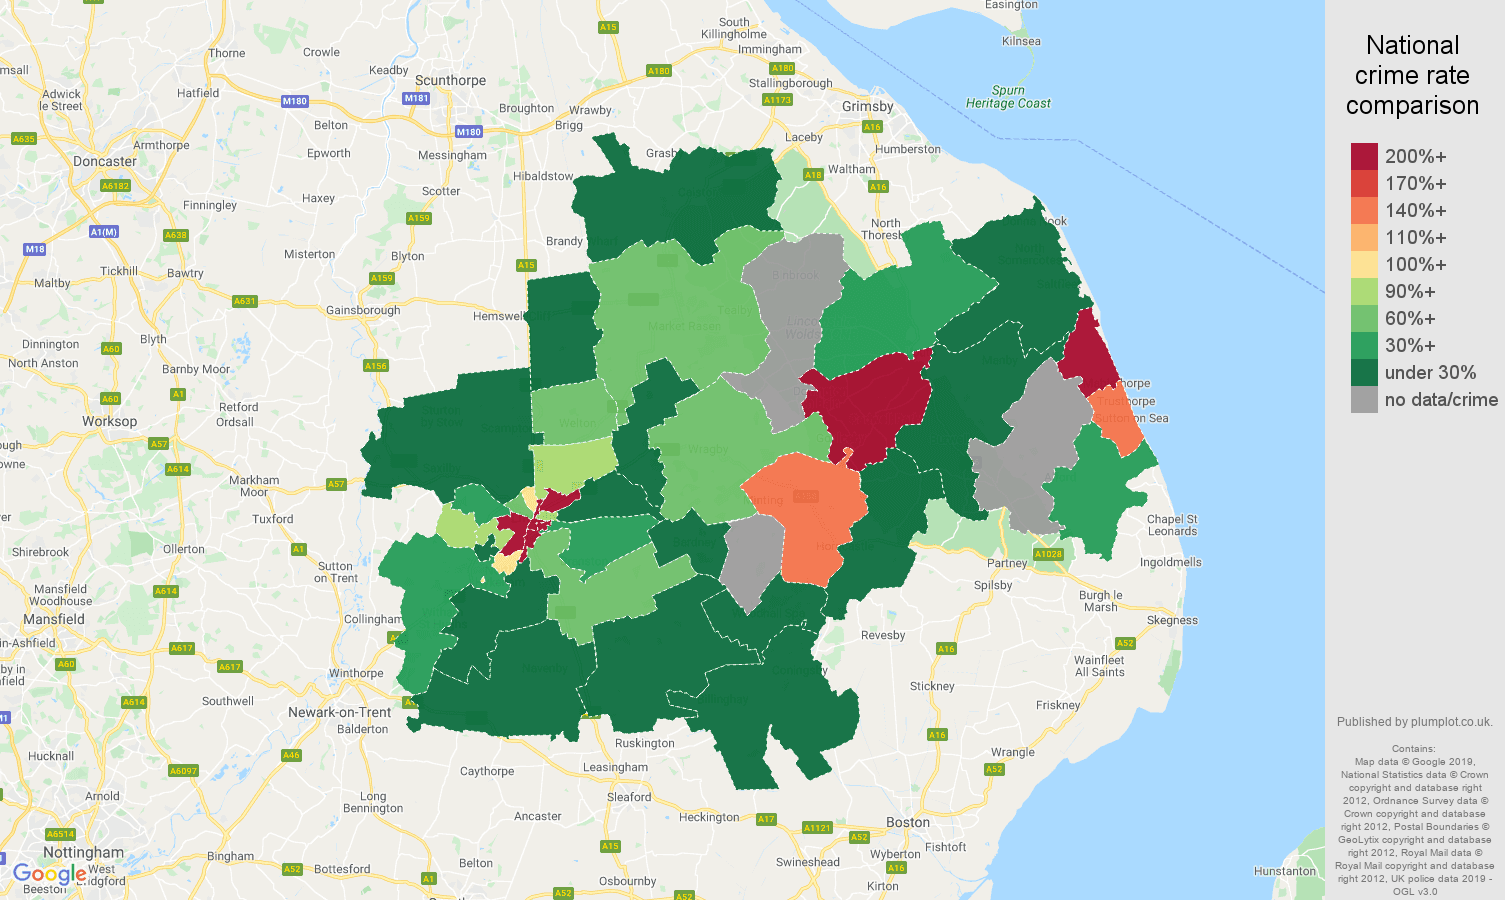 Lincoln shoplifting crime rate comparison map